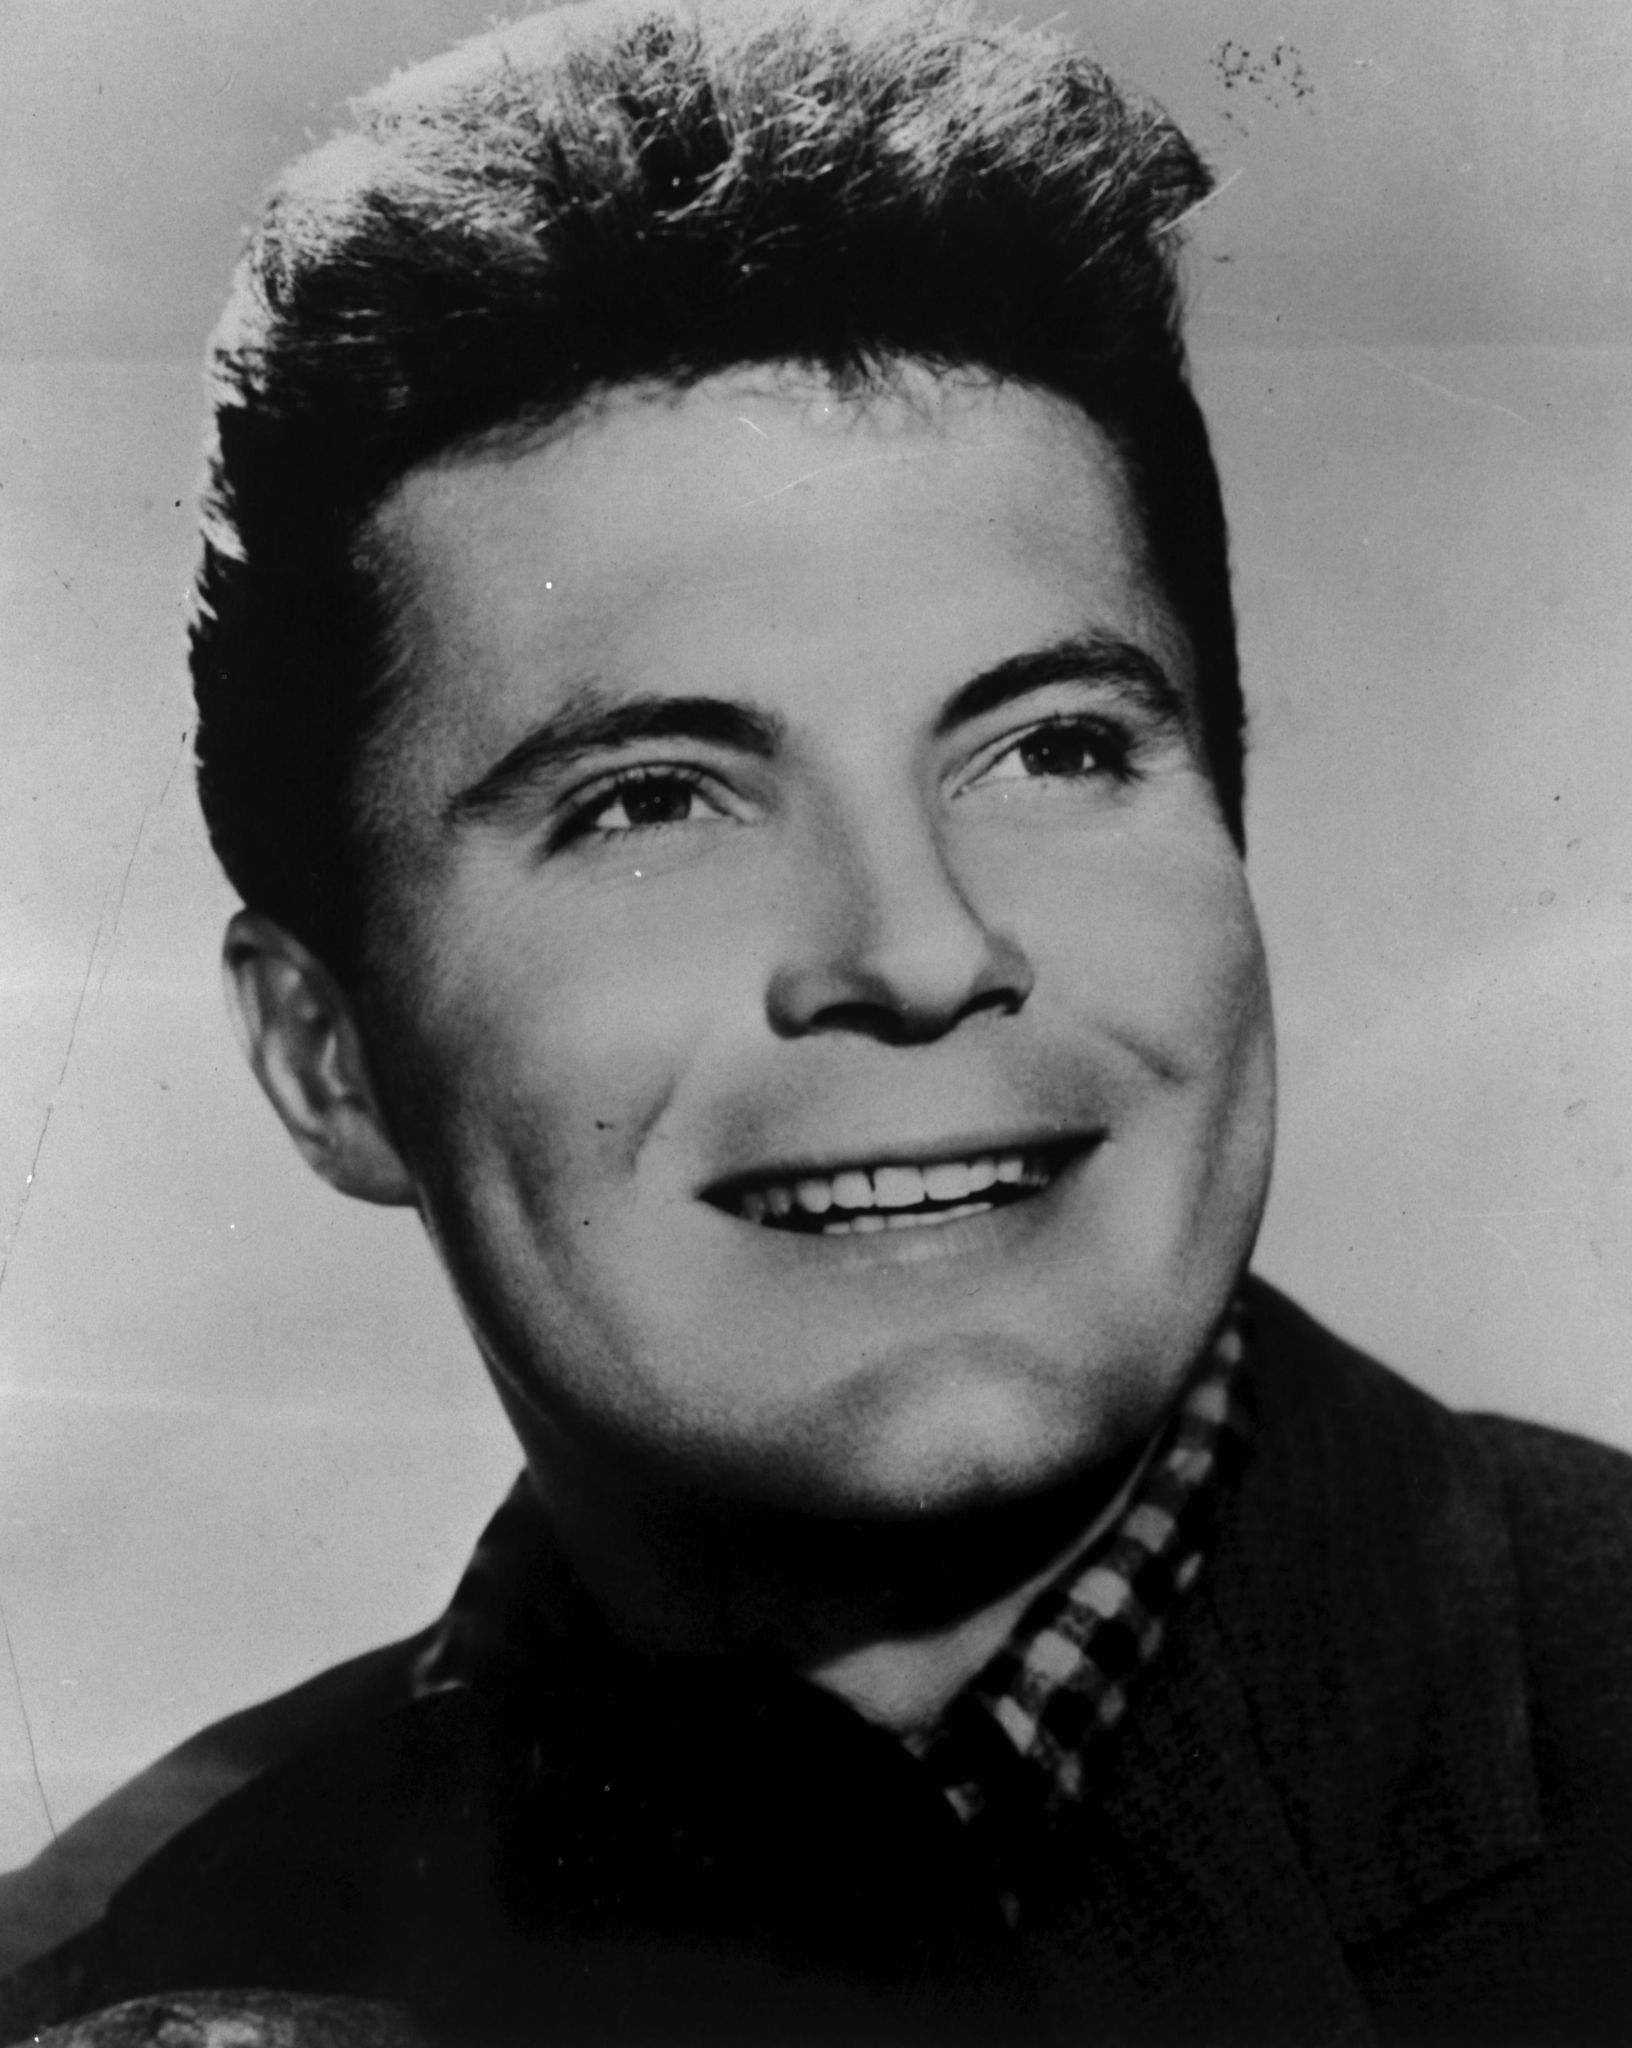 Max Baer Jr. Biography - Facts, Childhood, Family Life